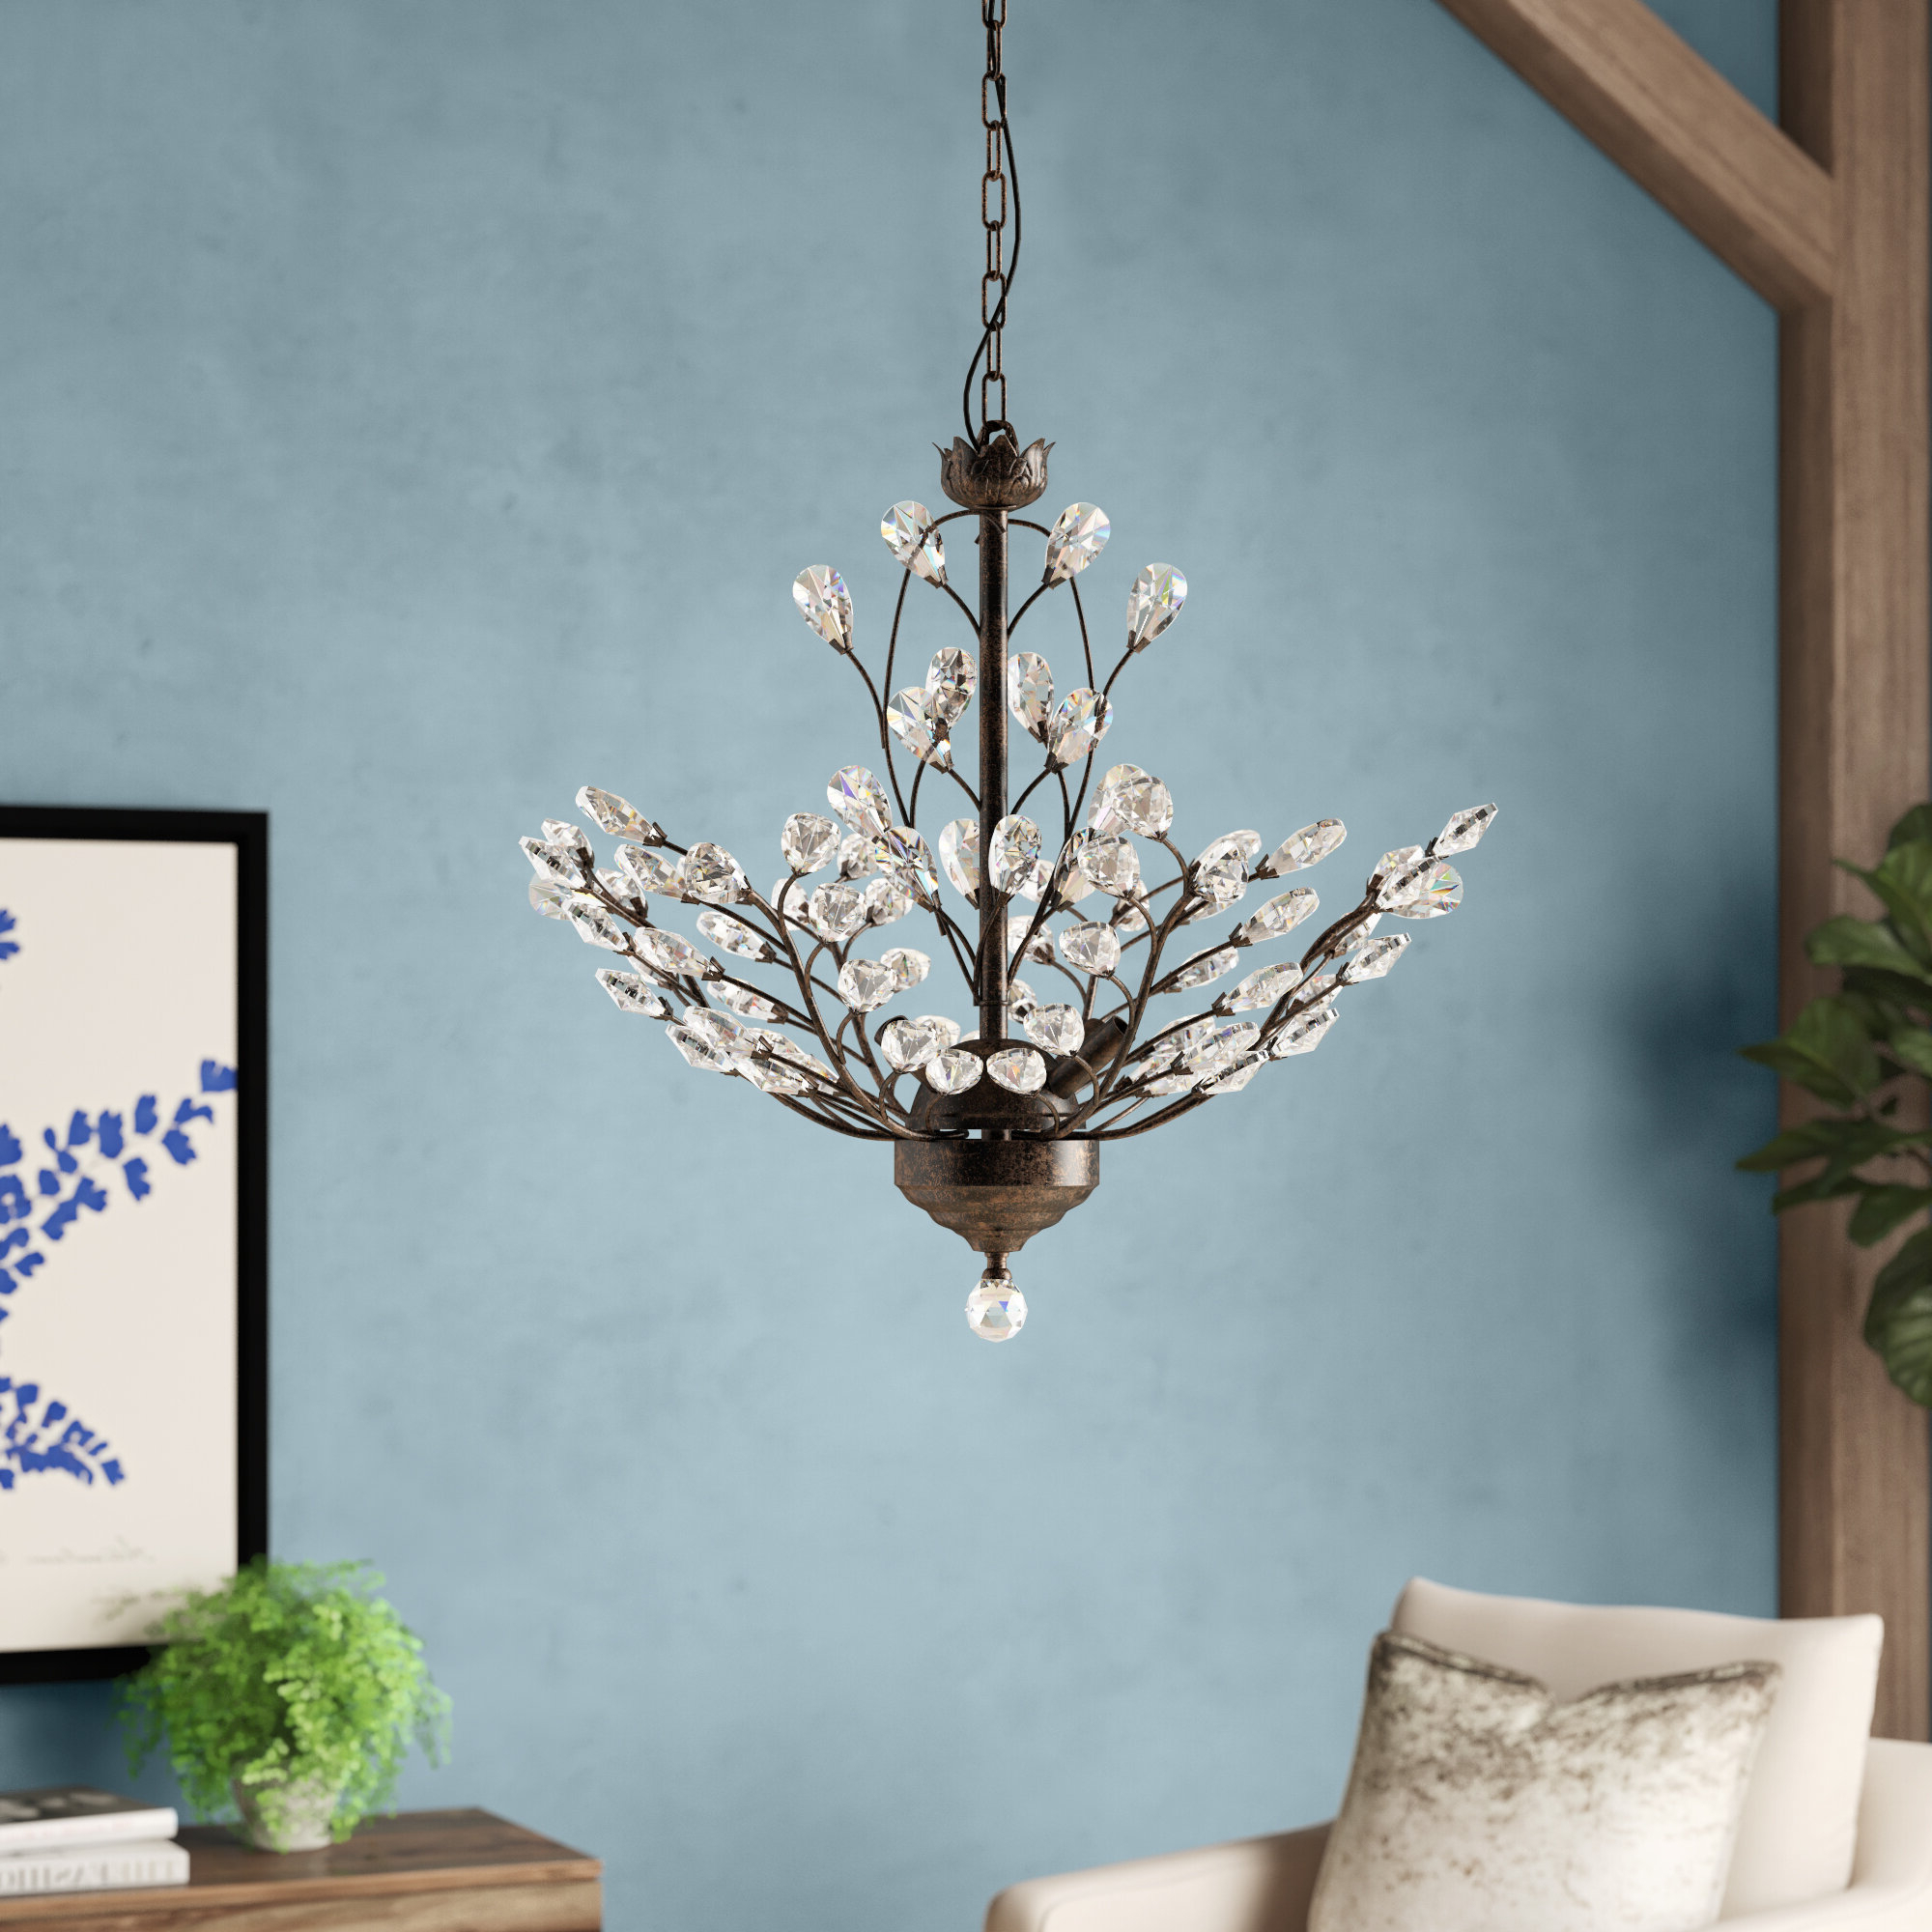 Widely Used Hesse 5 Light Candle Style Chandeliers In Alijah 4 Light Led Candle Style Chandelier (View 17 of 25)